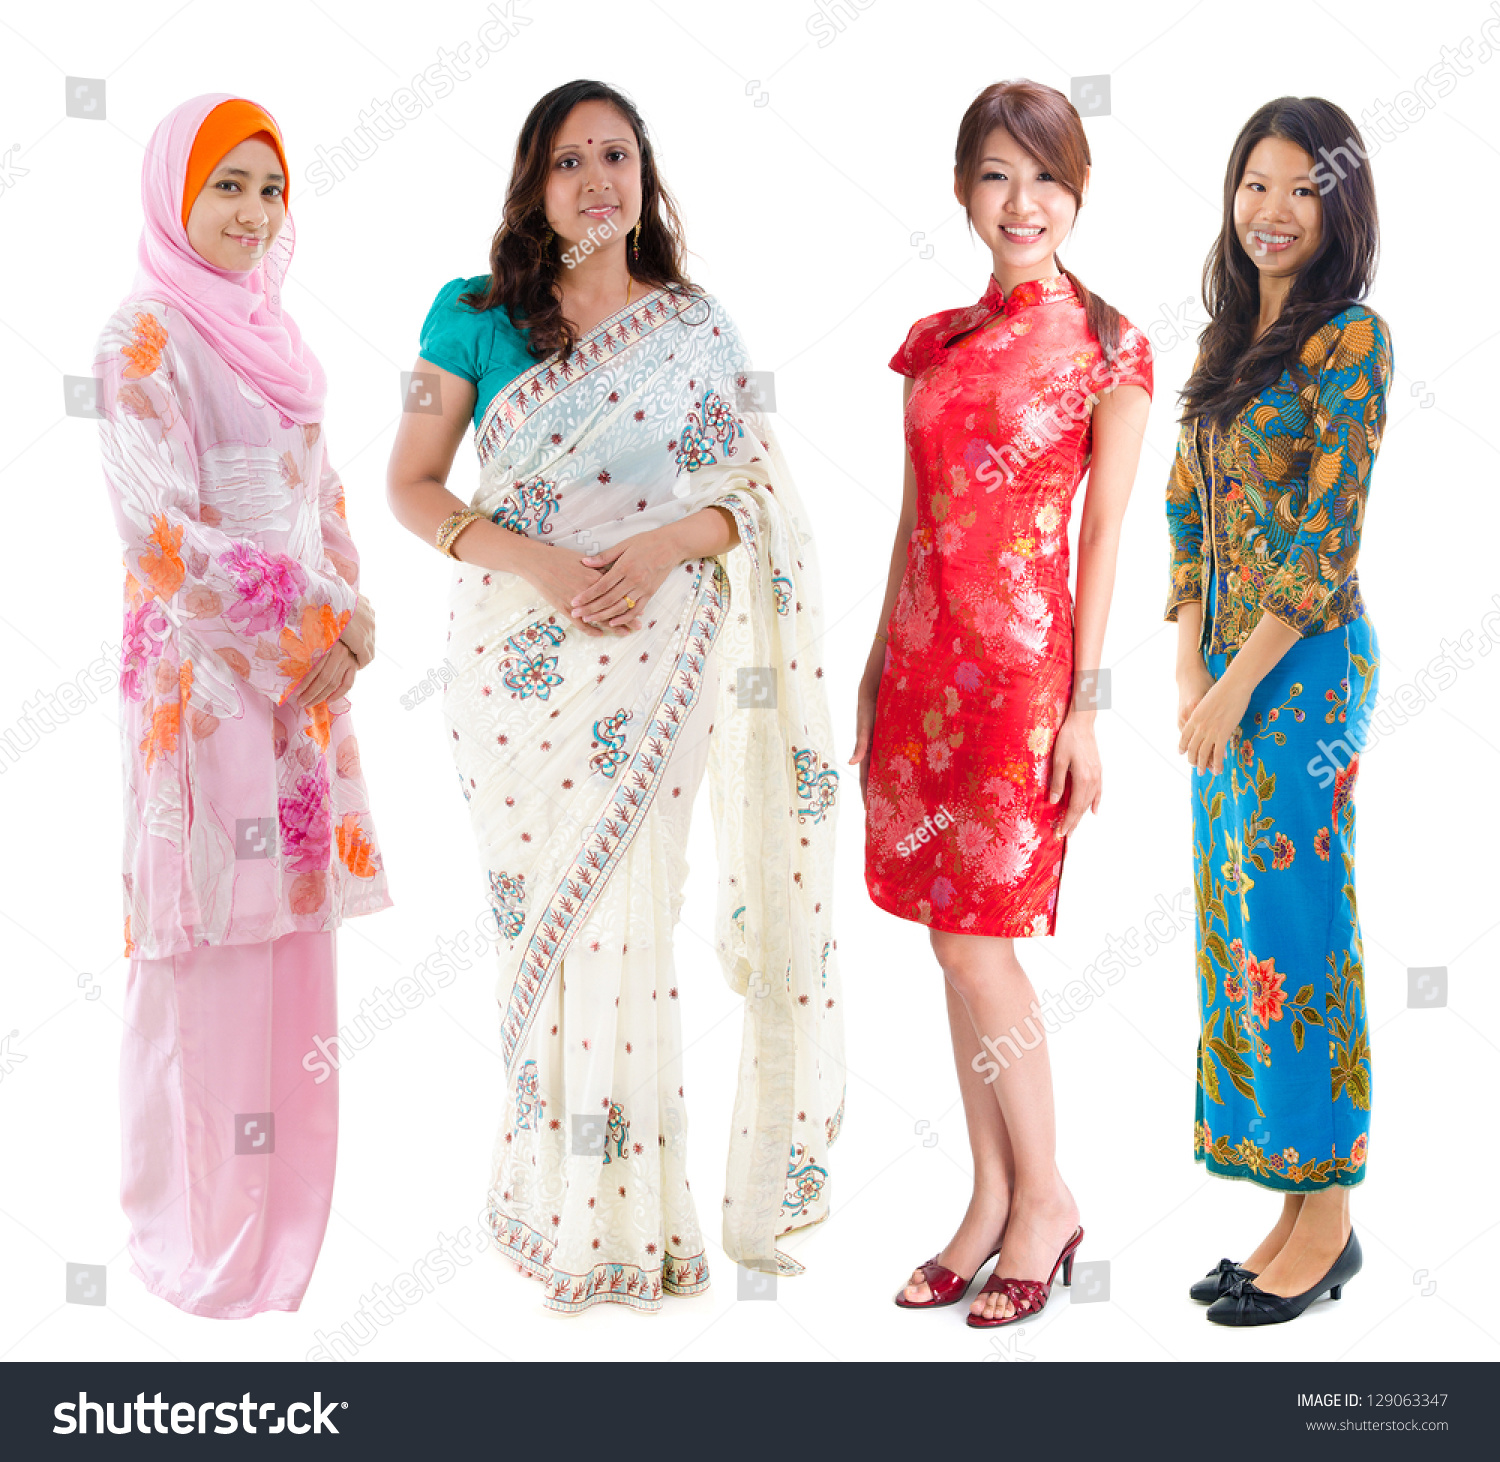 National Asian Women Health Organization 67